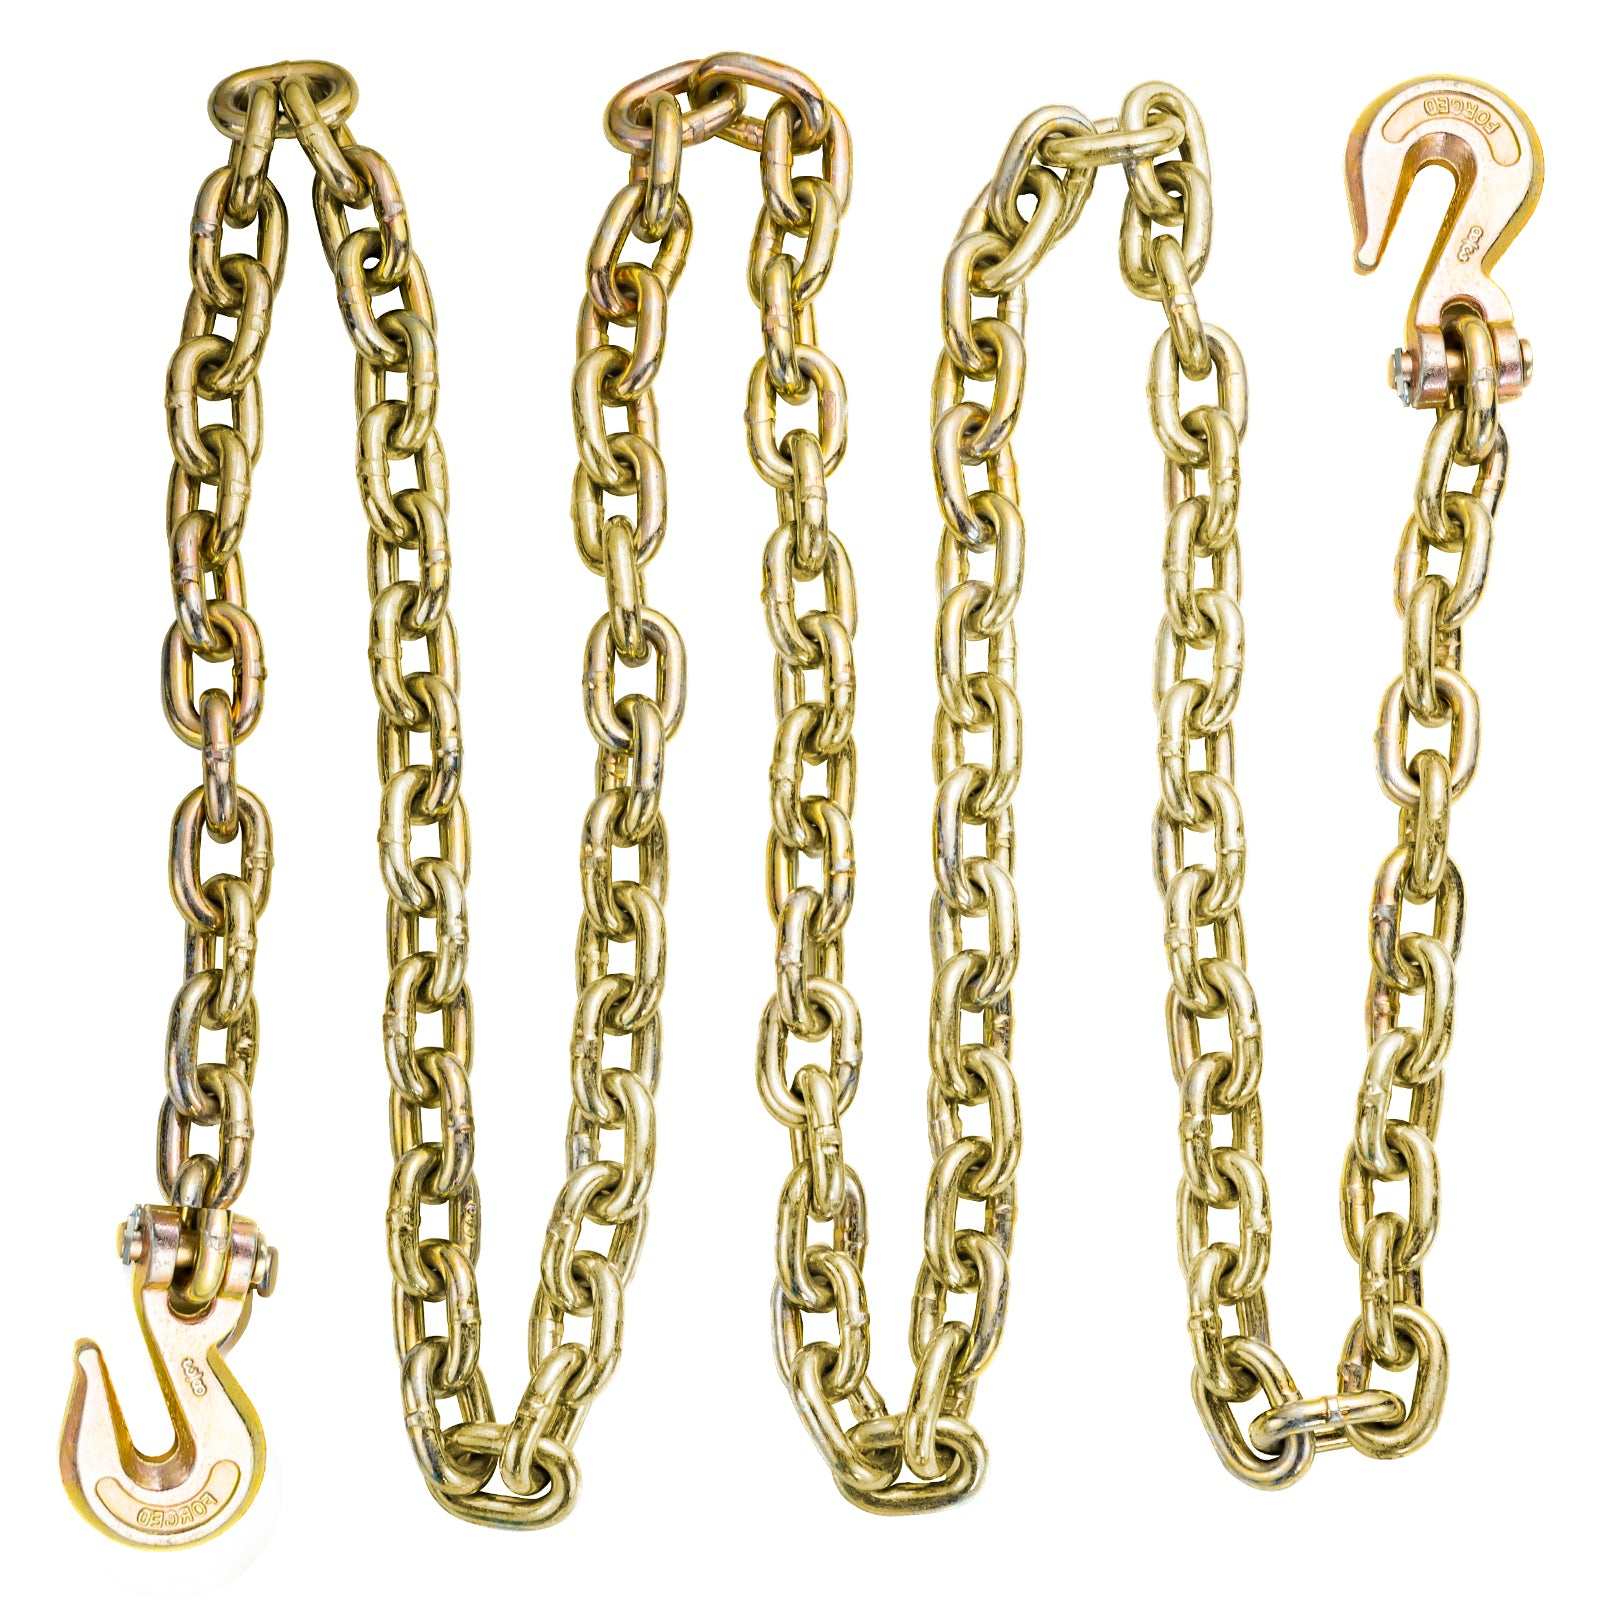 "Tow Chain Tie Down Binder Chain Flatbed With G70 Hooks 3/8"" 10.5ft"